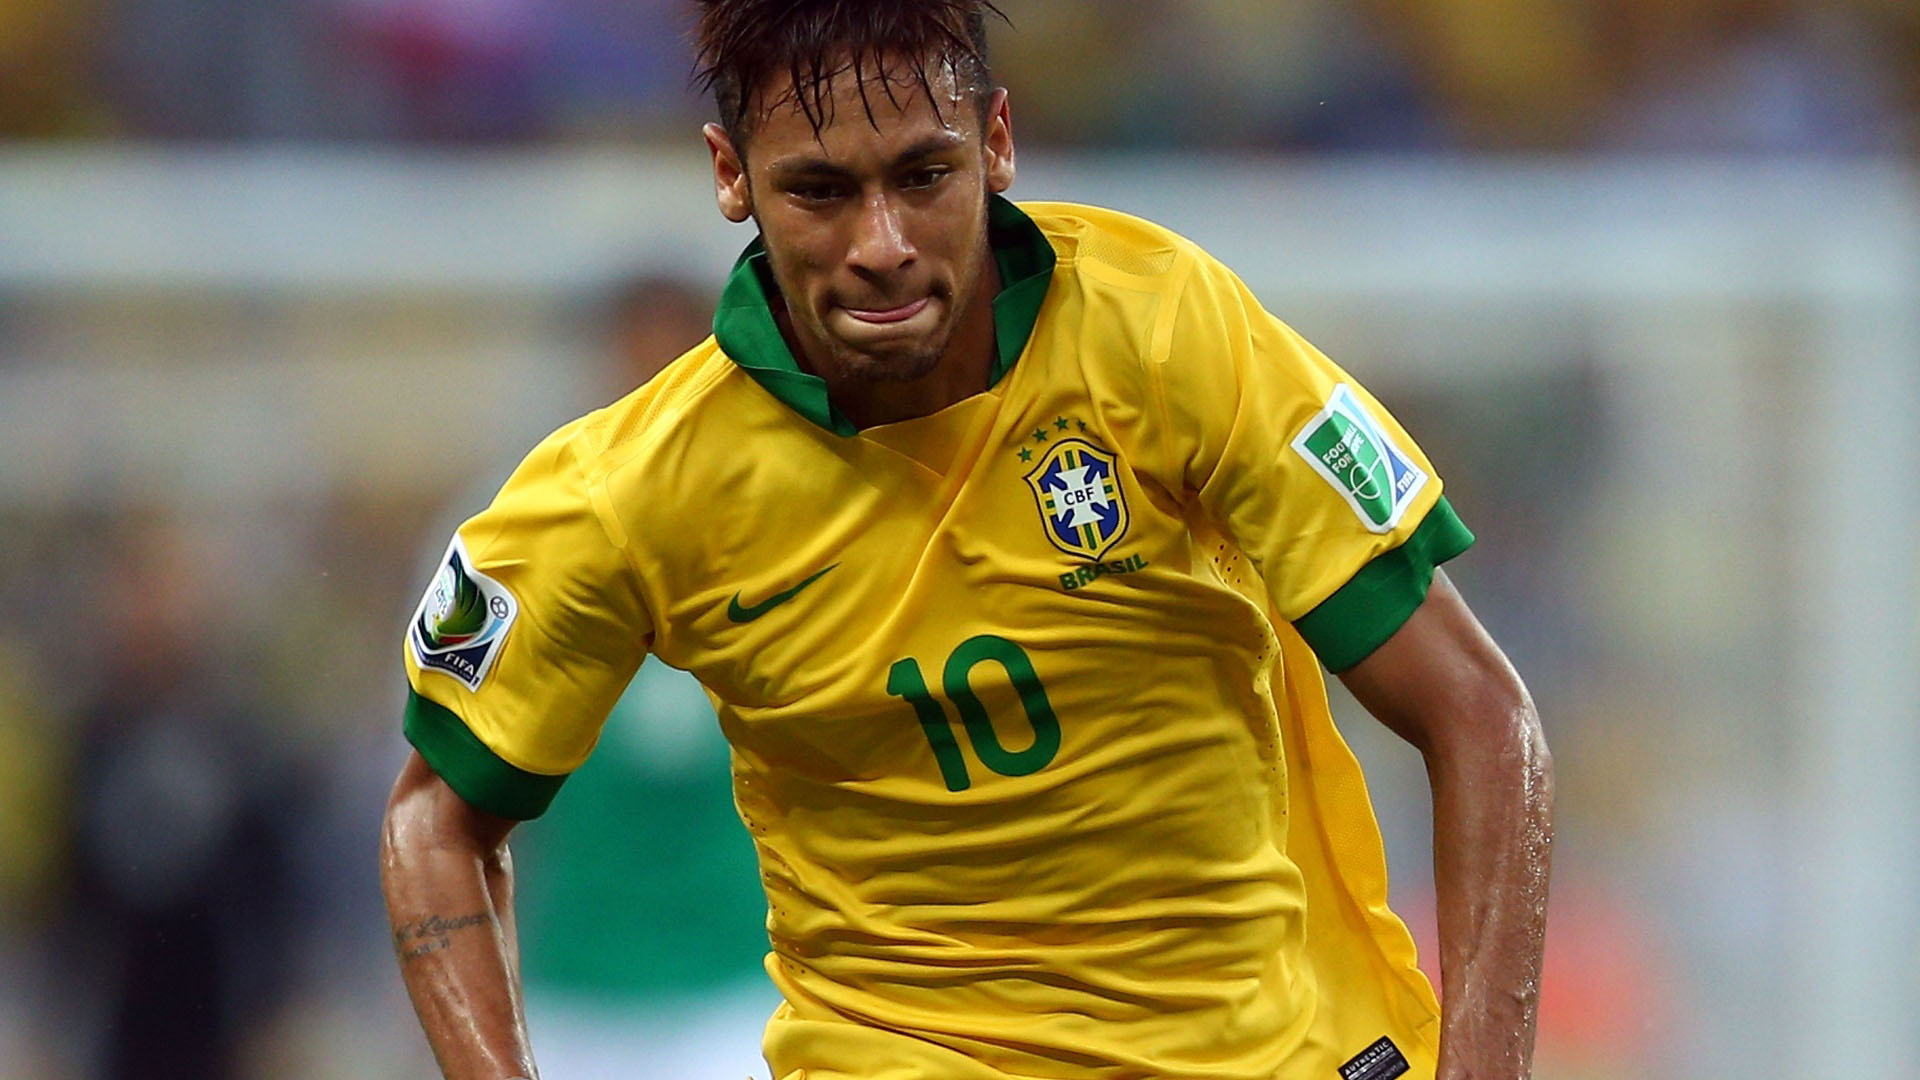 Neymar running for Brazil in the FIFA World Cup 2014